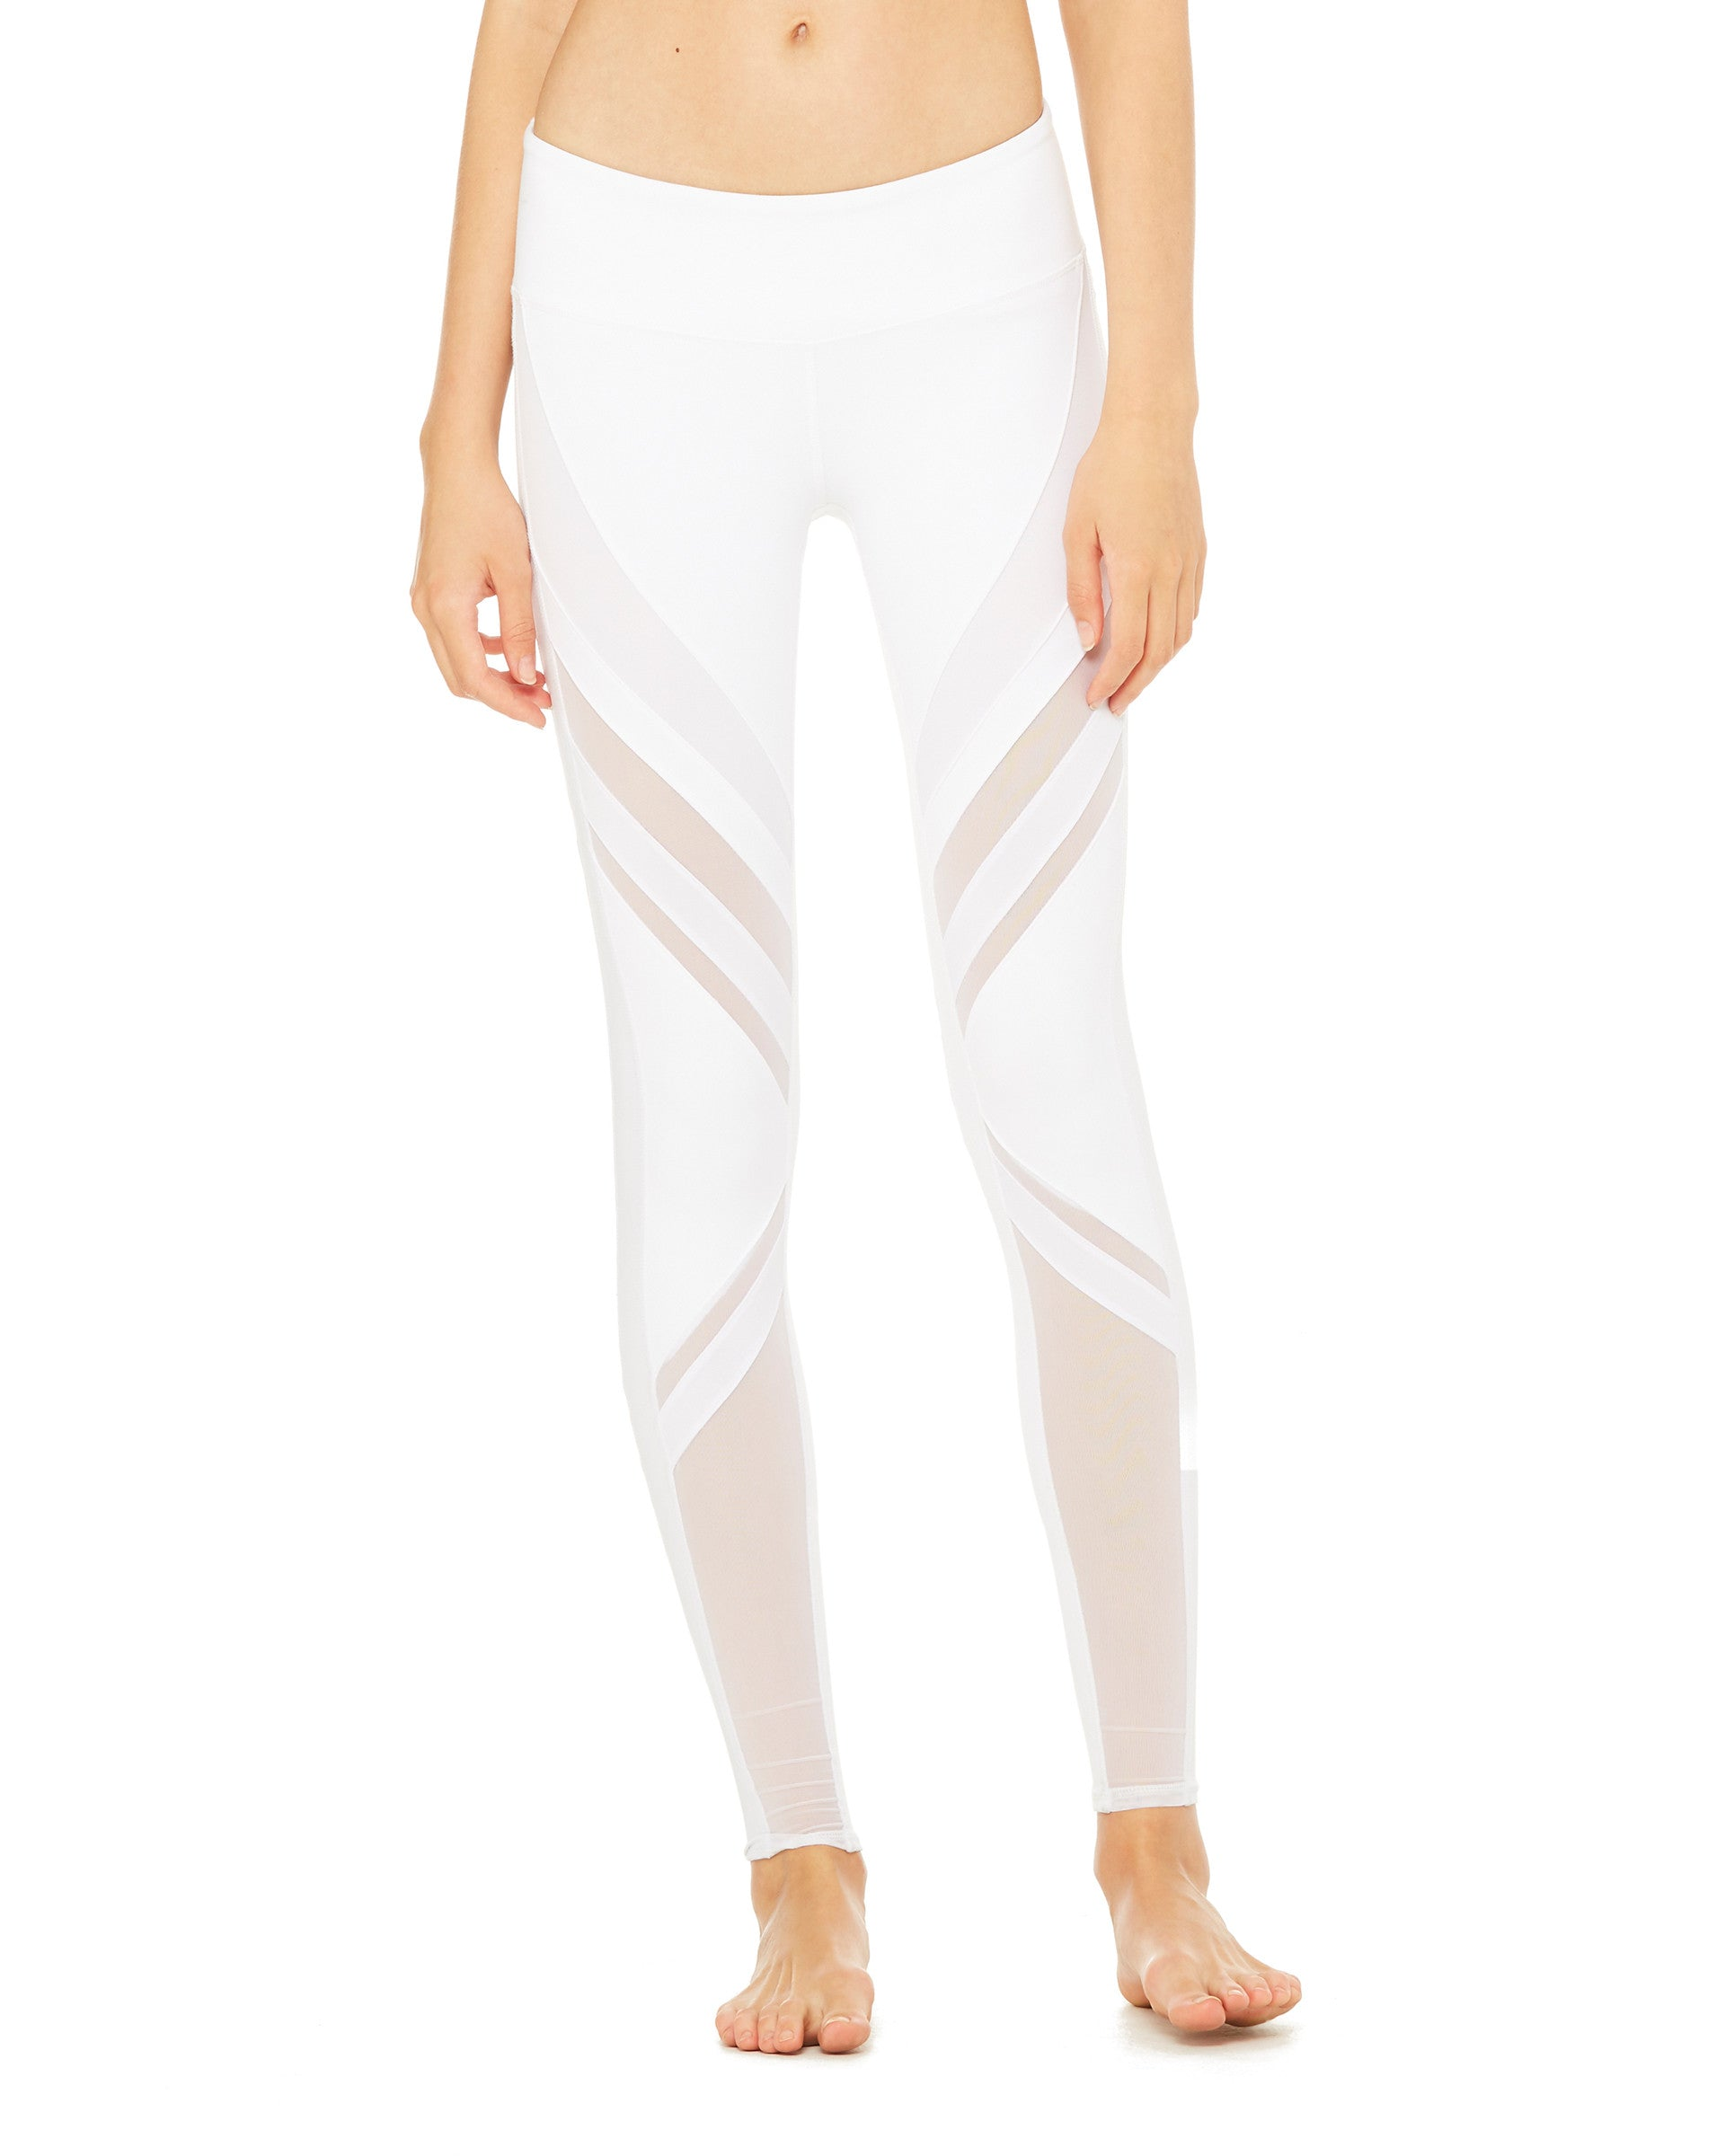 Epic Legging in White